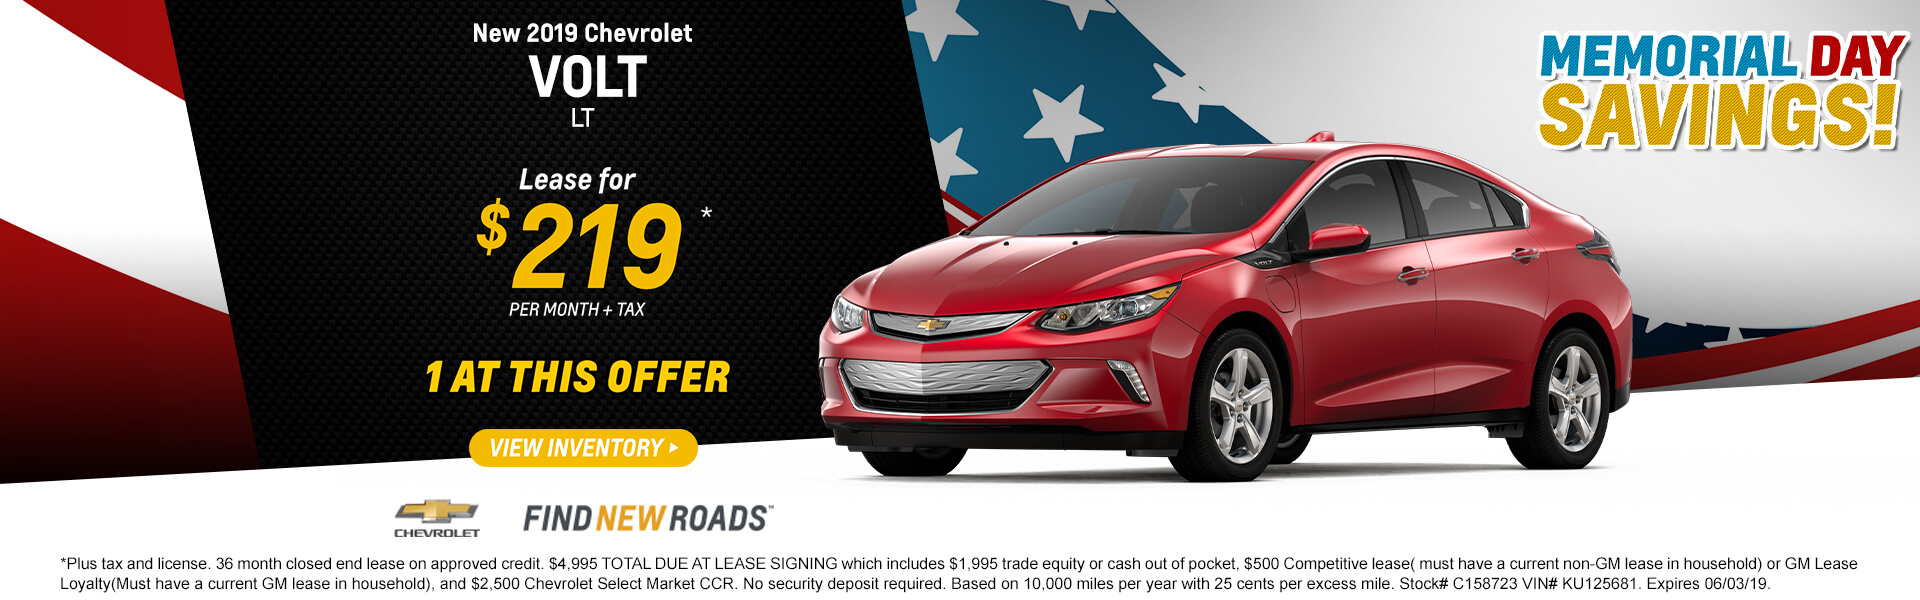 2019 CHEVROLET Volt LT   Lease for $219* + tax per month  1 AT THIS OFFER  *Plus tax and license. 36 month closed end lease on approved credit. $4,995 TOTAL DUE AT LEASE SIGNING which includes $1,995 trade equity or cash out of pocket, $500 Competitive lease( must have a current non-GM lease in household) or GM Lease Loyalty(Must have a current GM lease in household), and $2,500 Chevrolet Select Market CCR. No security deposit required. Based on 10,000 miles per year with 25 cents per excess mile. Stock# C158723 VIN# KU125681. Expires 06/03/19.